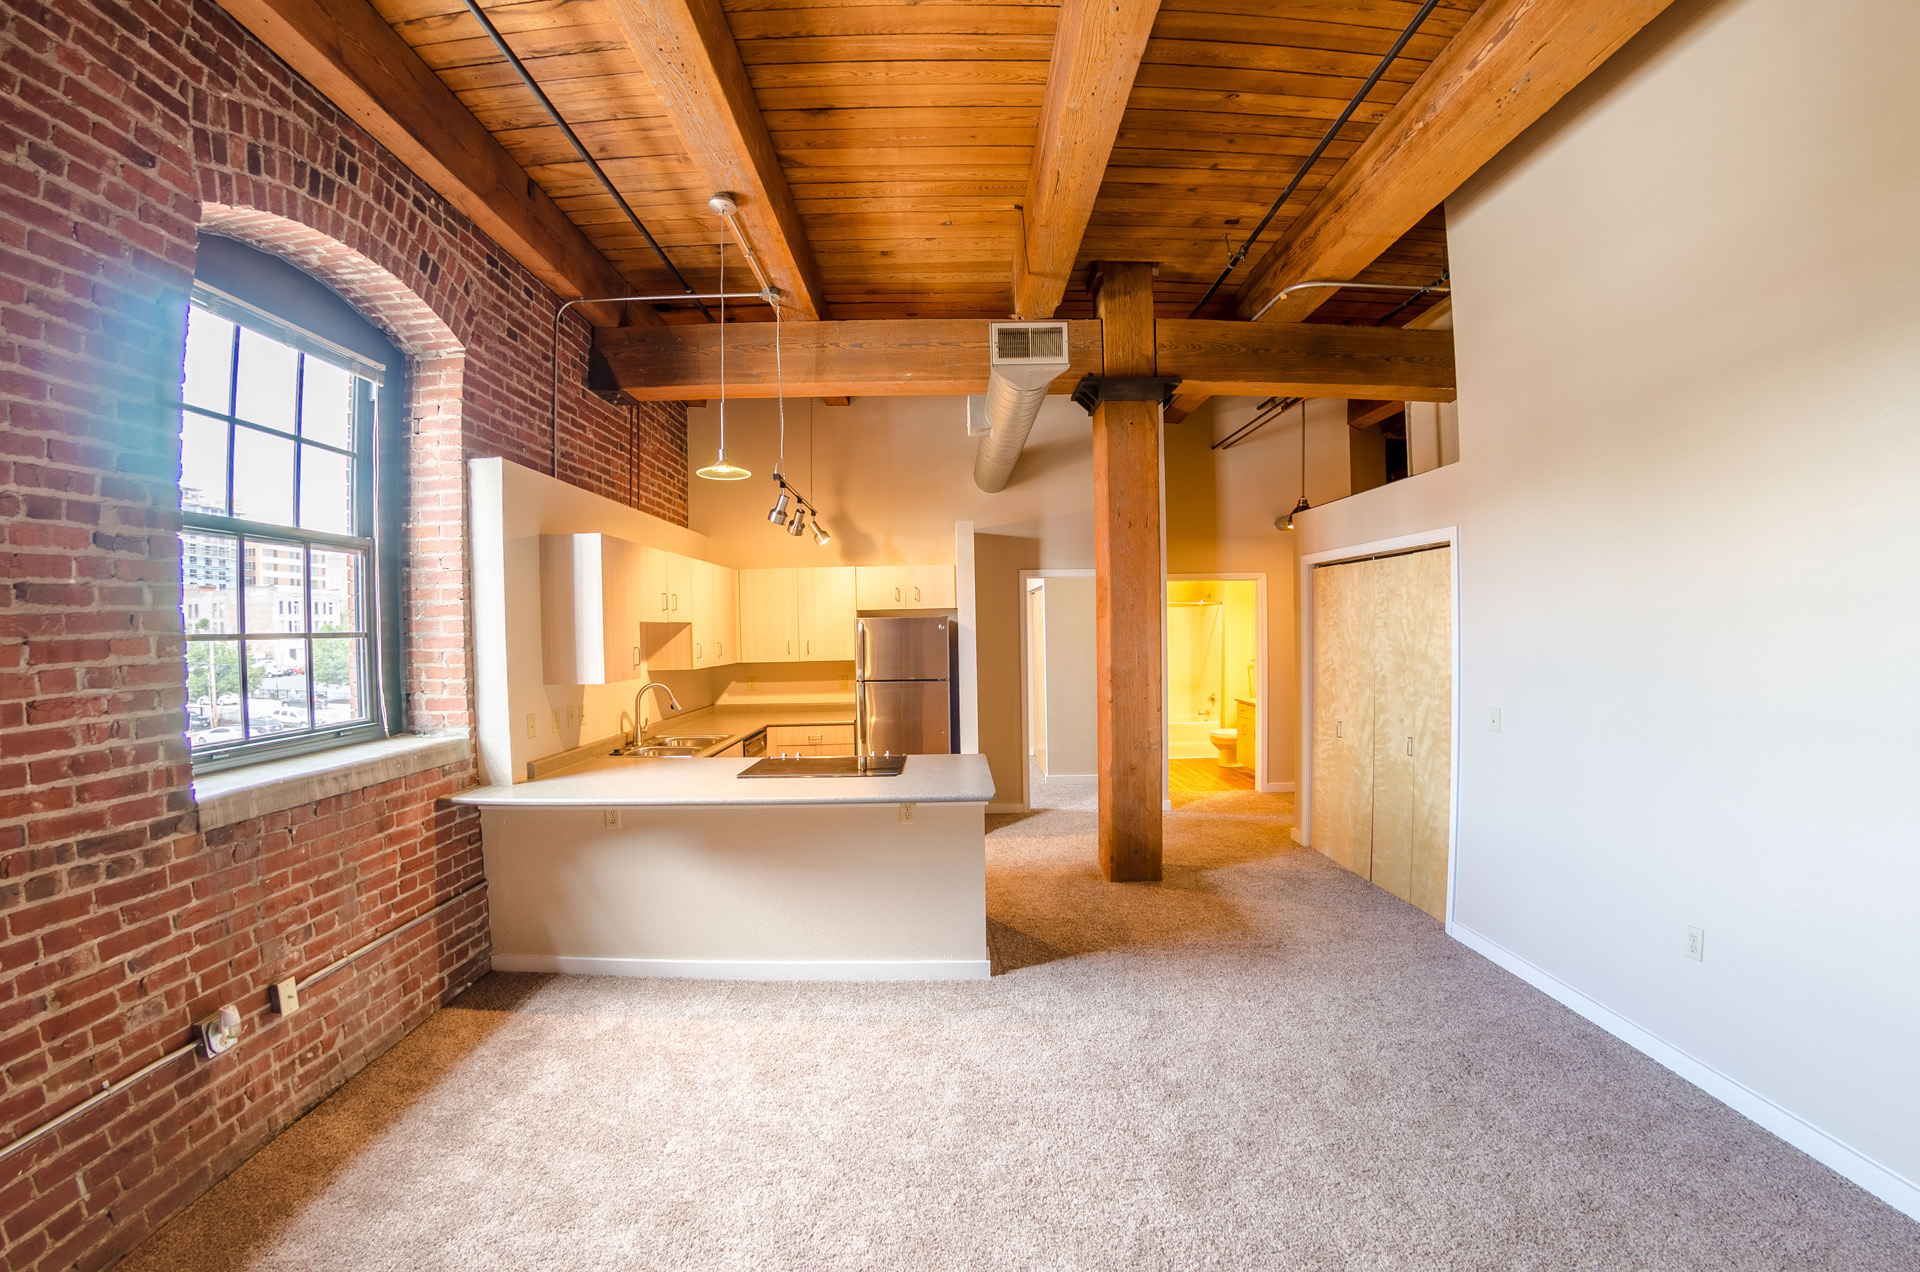 For Rent Ebt 306 Lofts Condos Amp Apartments Kcloftcentral